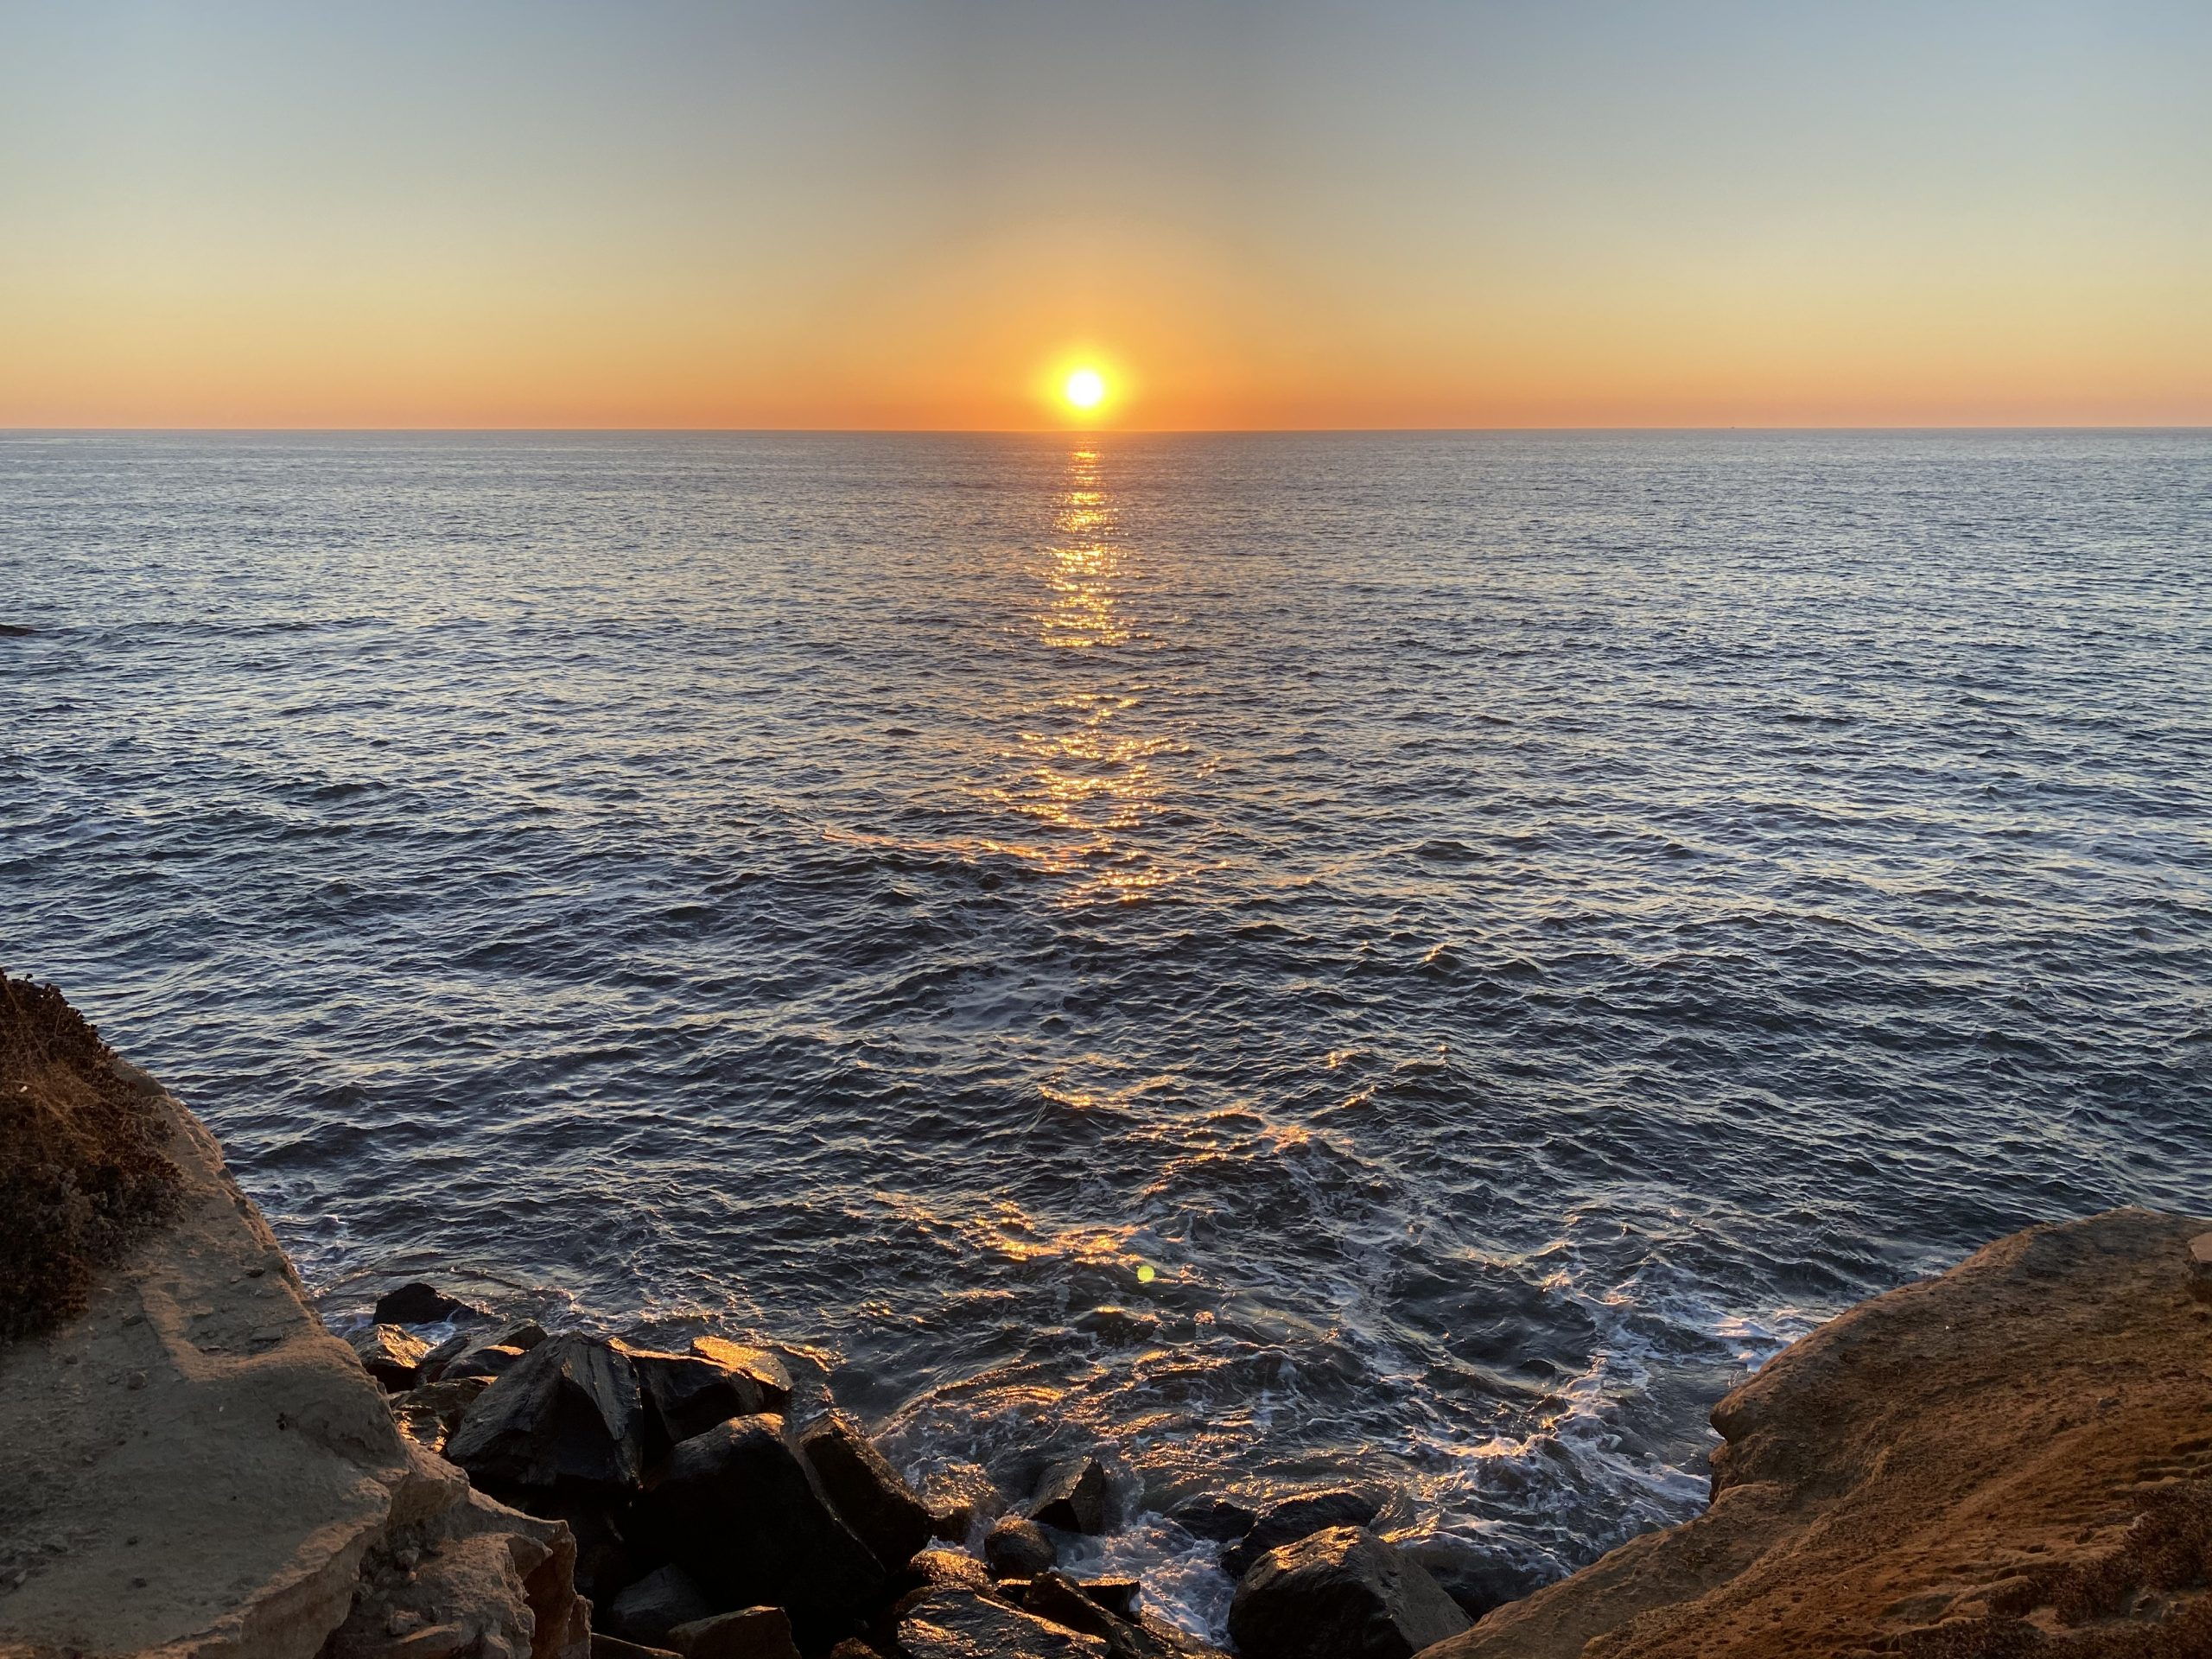 sunset at Sunset Cliffs in San Diego, CA